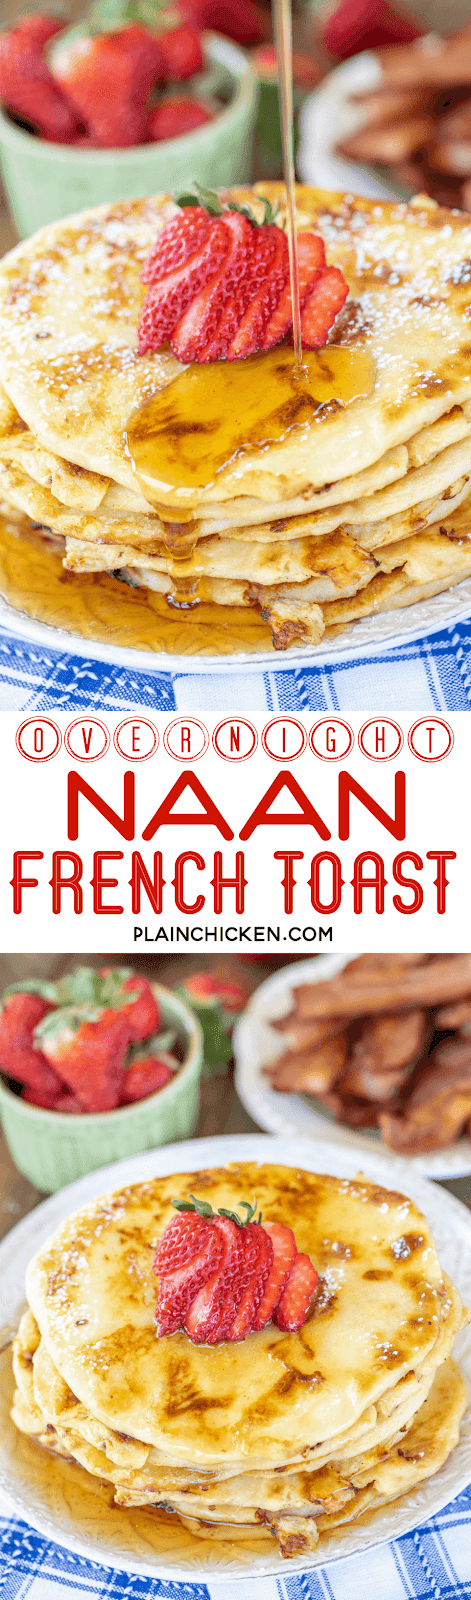 collage of two photos of naan bread french toast